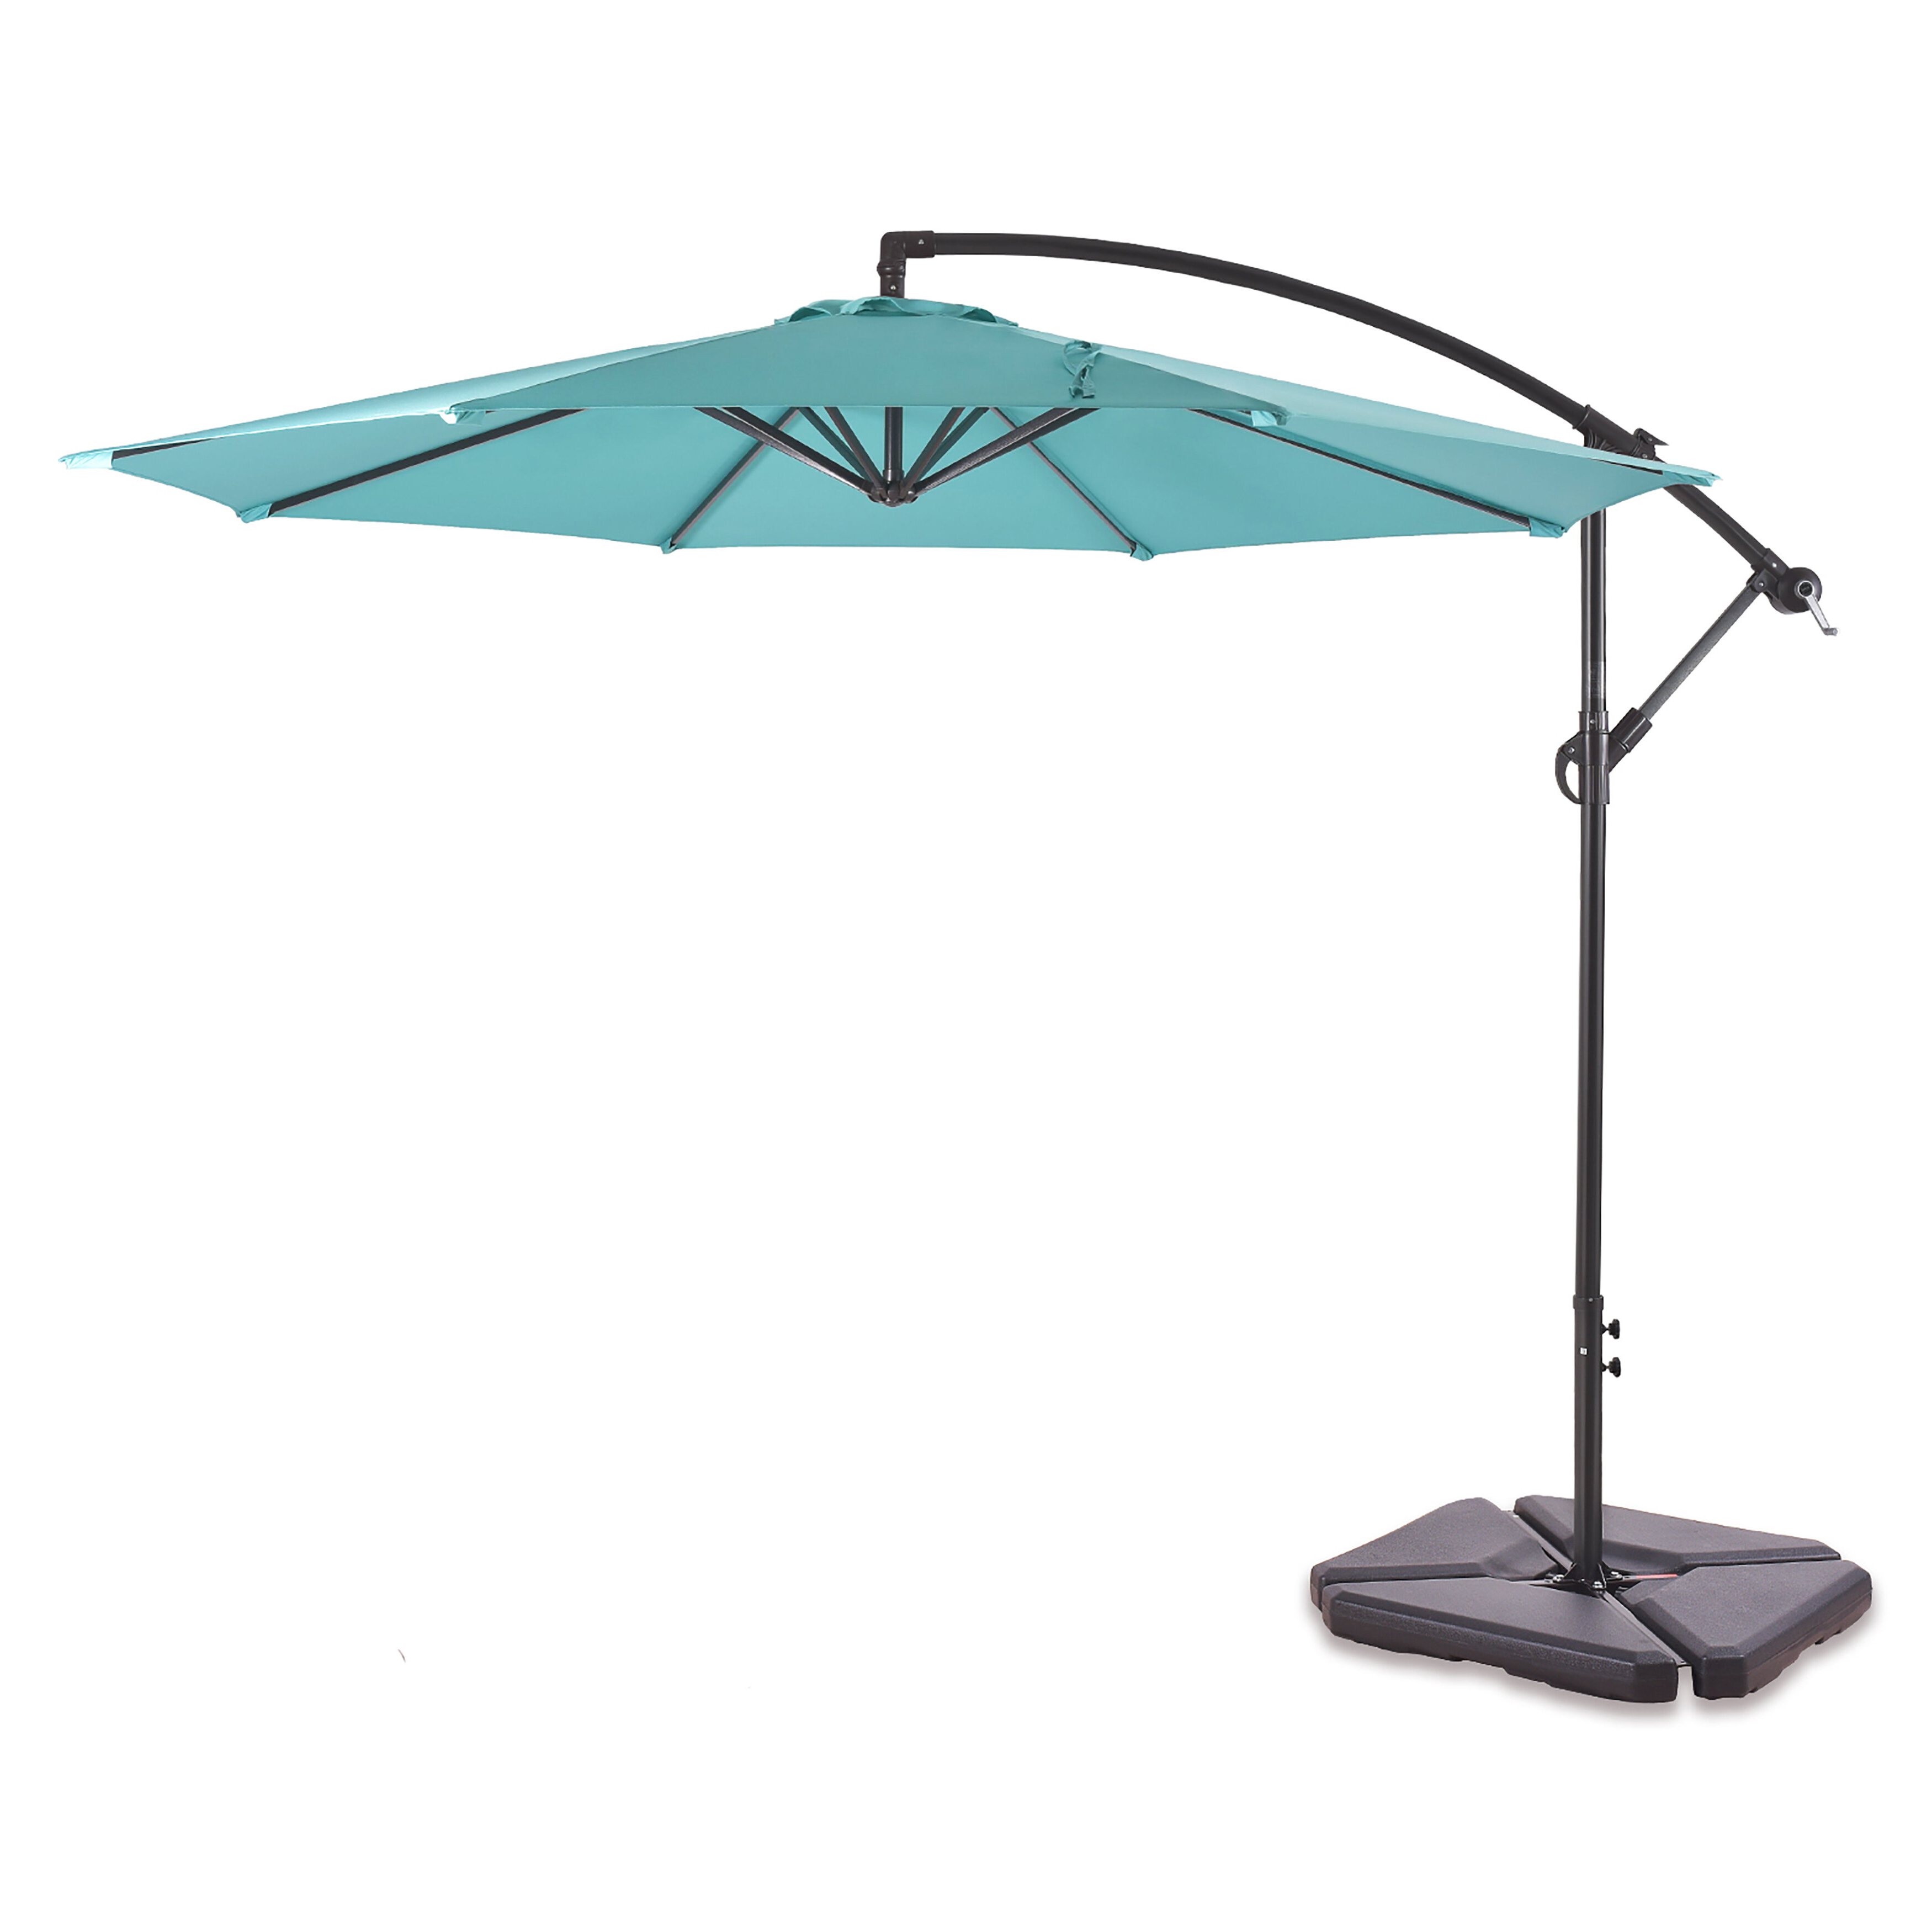 2019 Karr 10' Cantilever Umbrella Intended For Gribble 3Cantilever Umbrellas (Gallery 15 of 20)